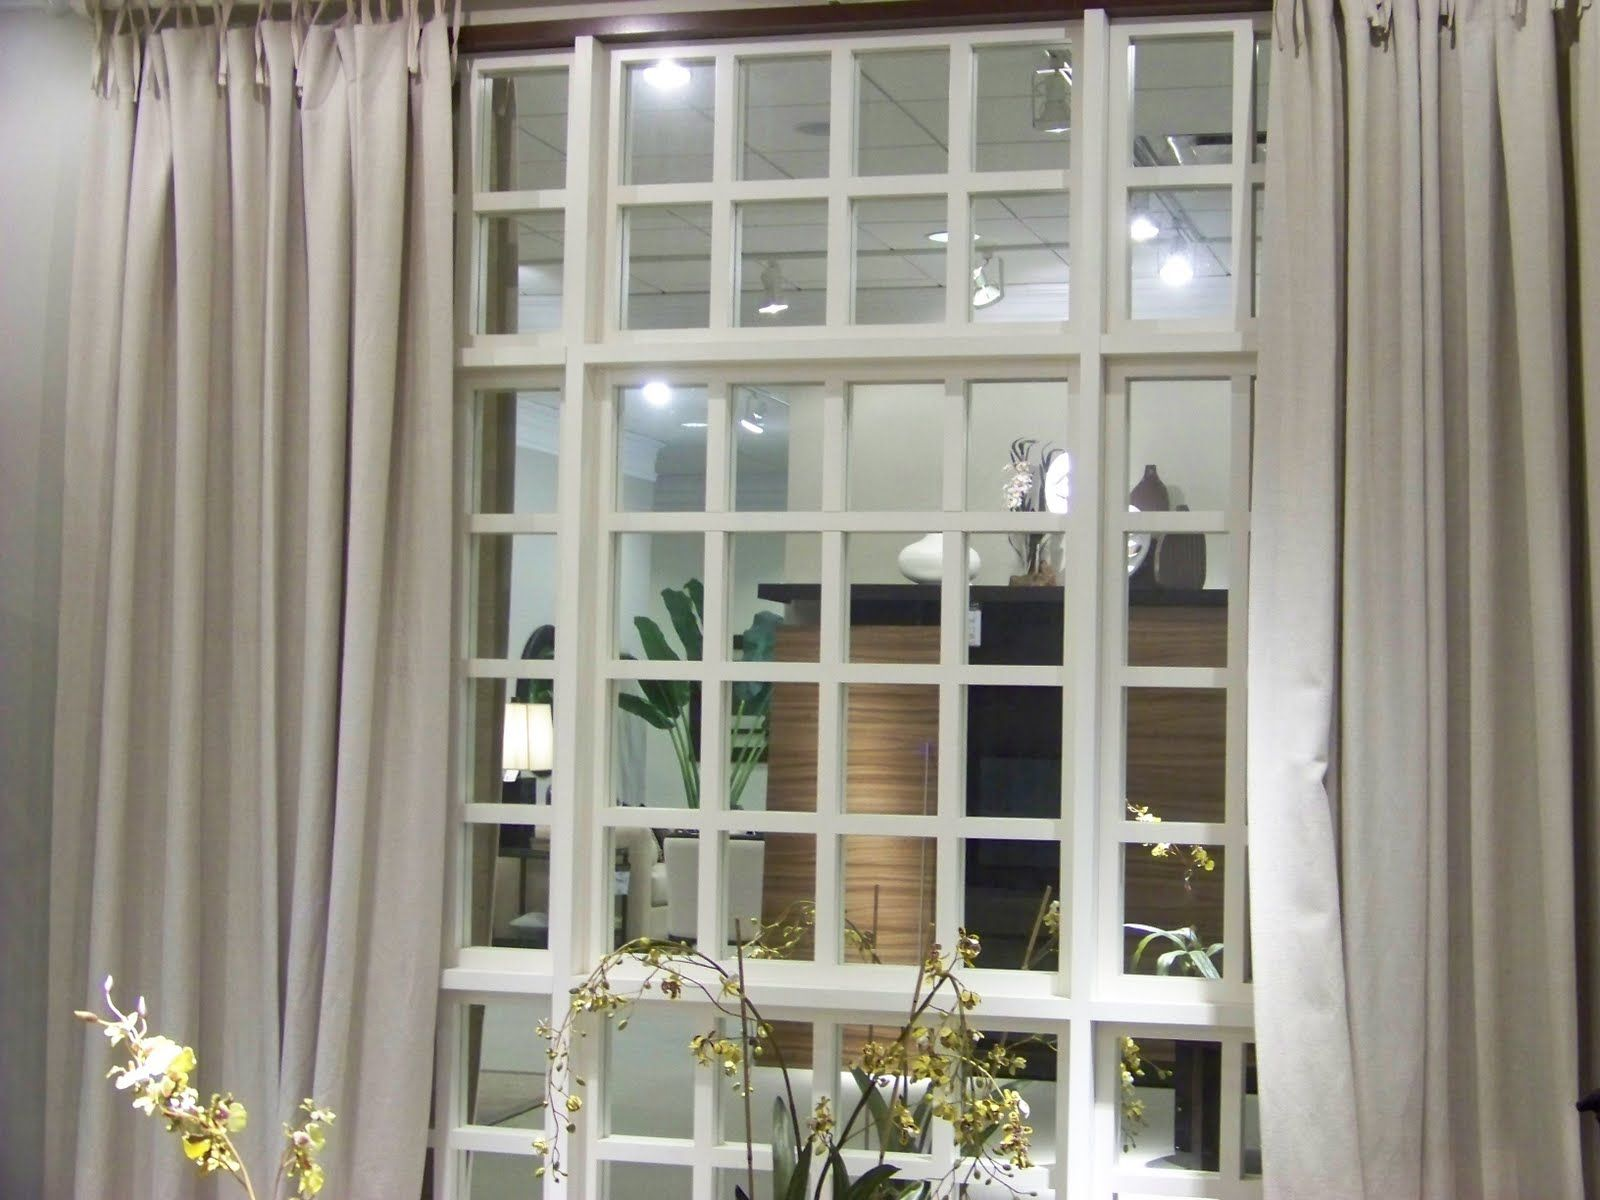 Clever Faux Window Great Idea For A Basement Window Scene Covers Pinterest Overlays Kitchen Sinks And Window